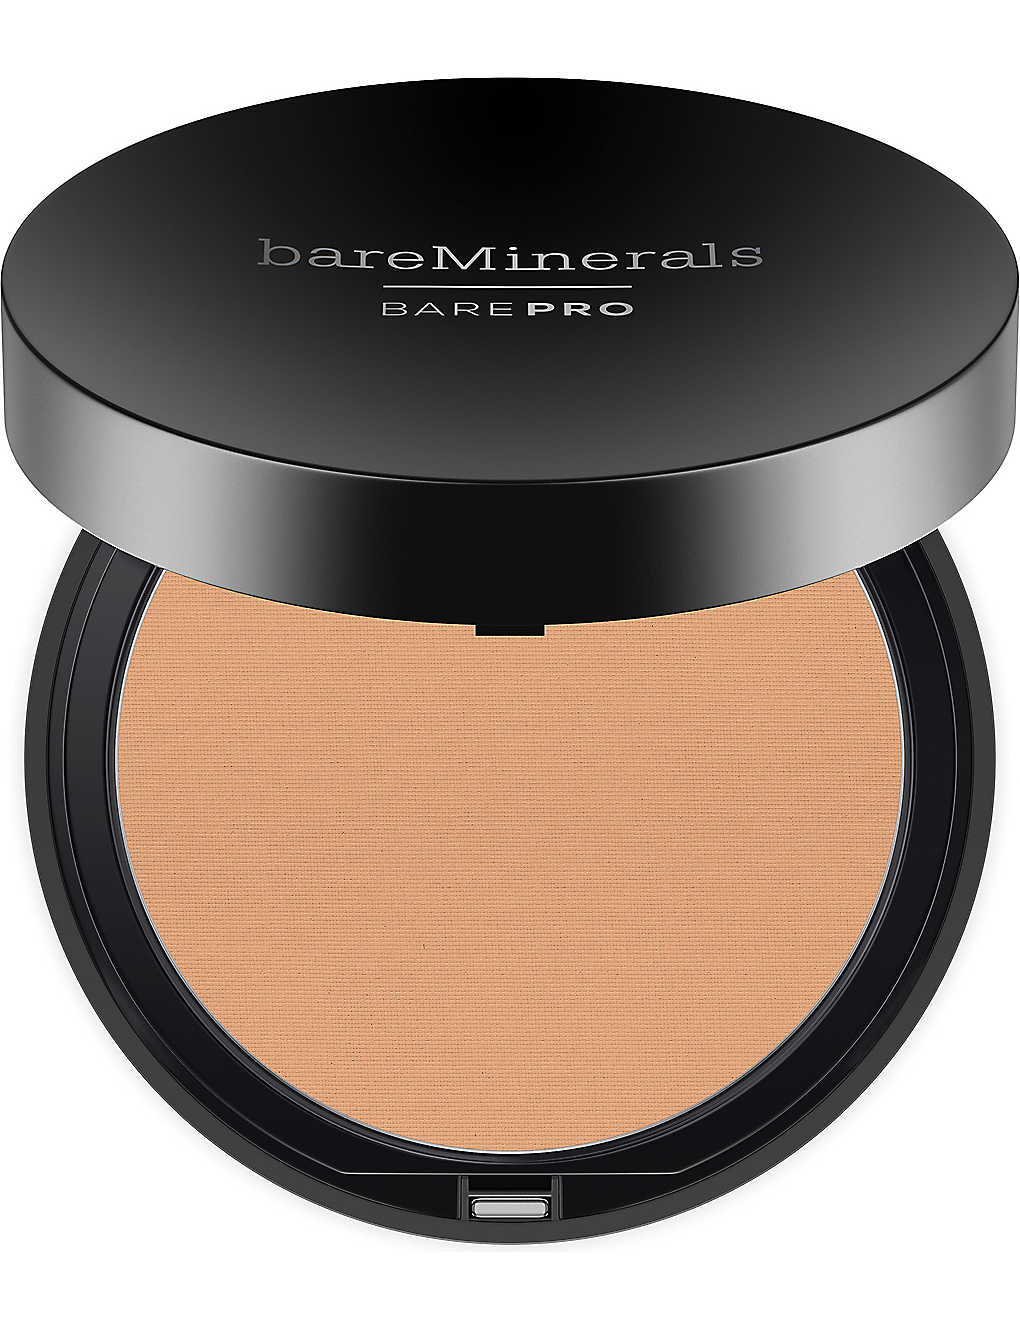 BARE MINERALS: barePro performance wear powder foundation